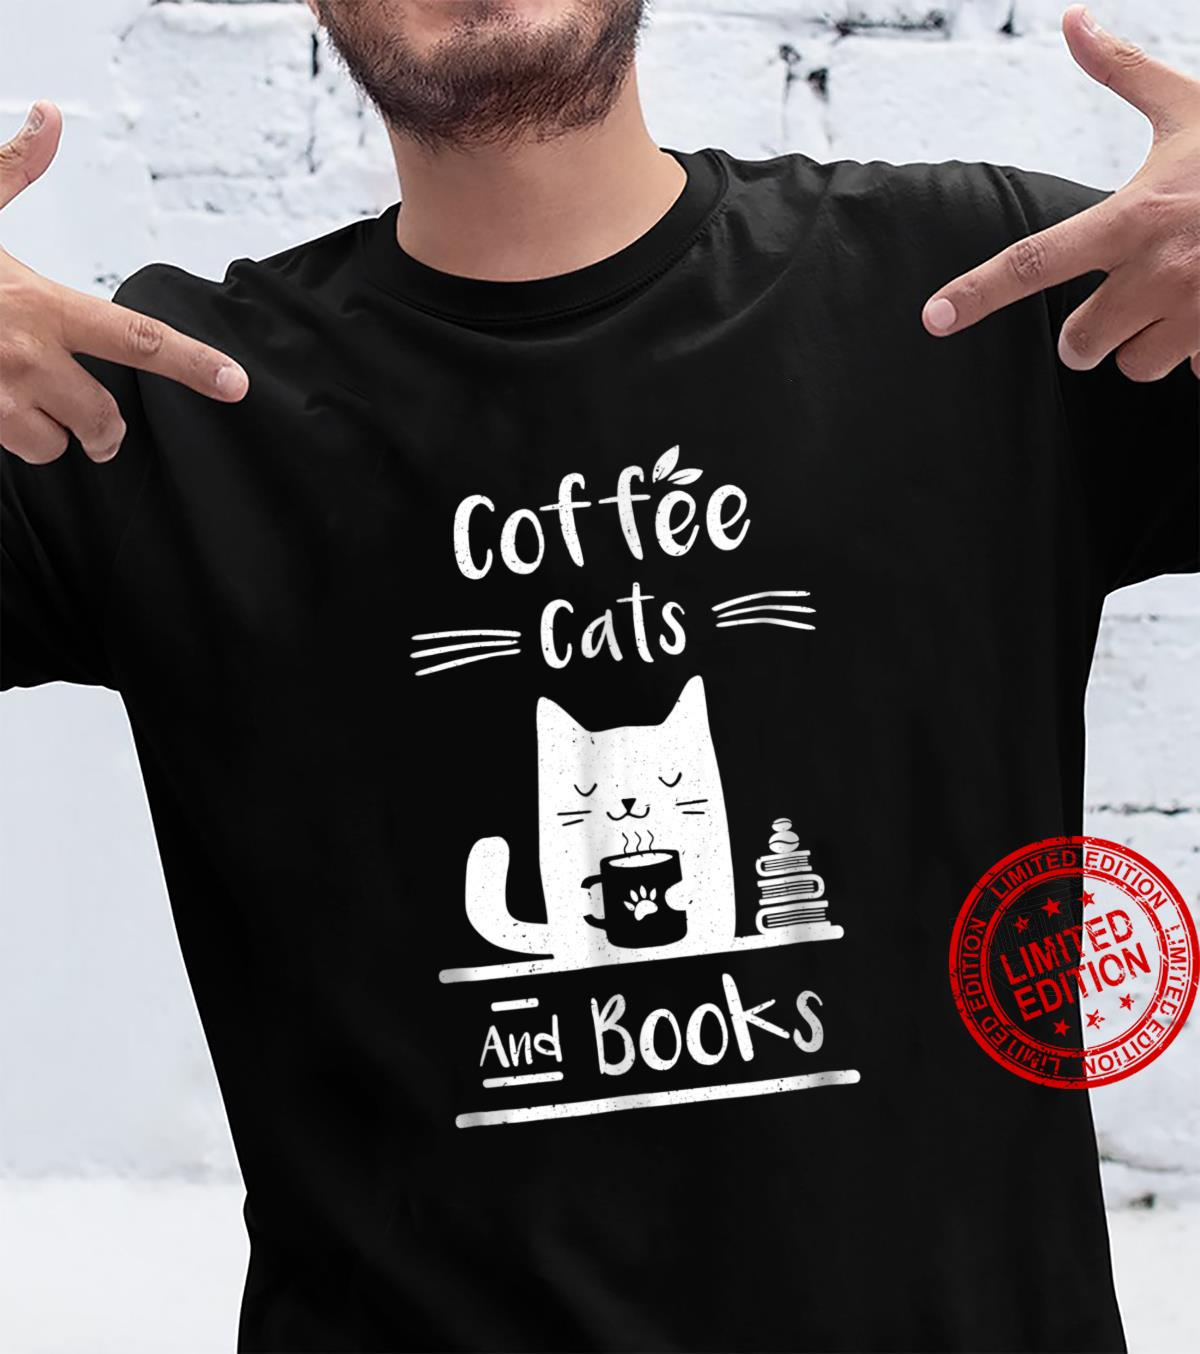 Coffee Cats And Books Shirt